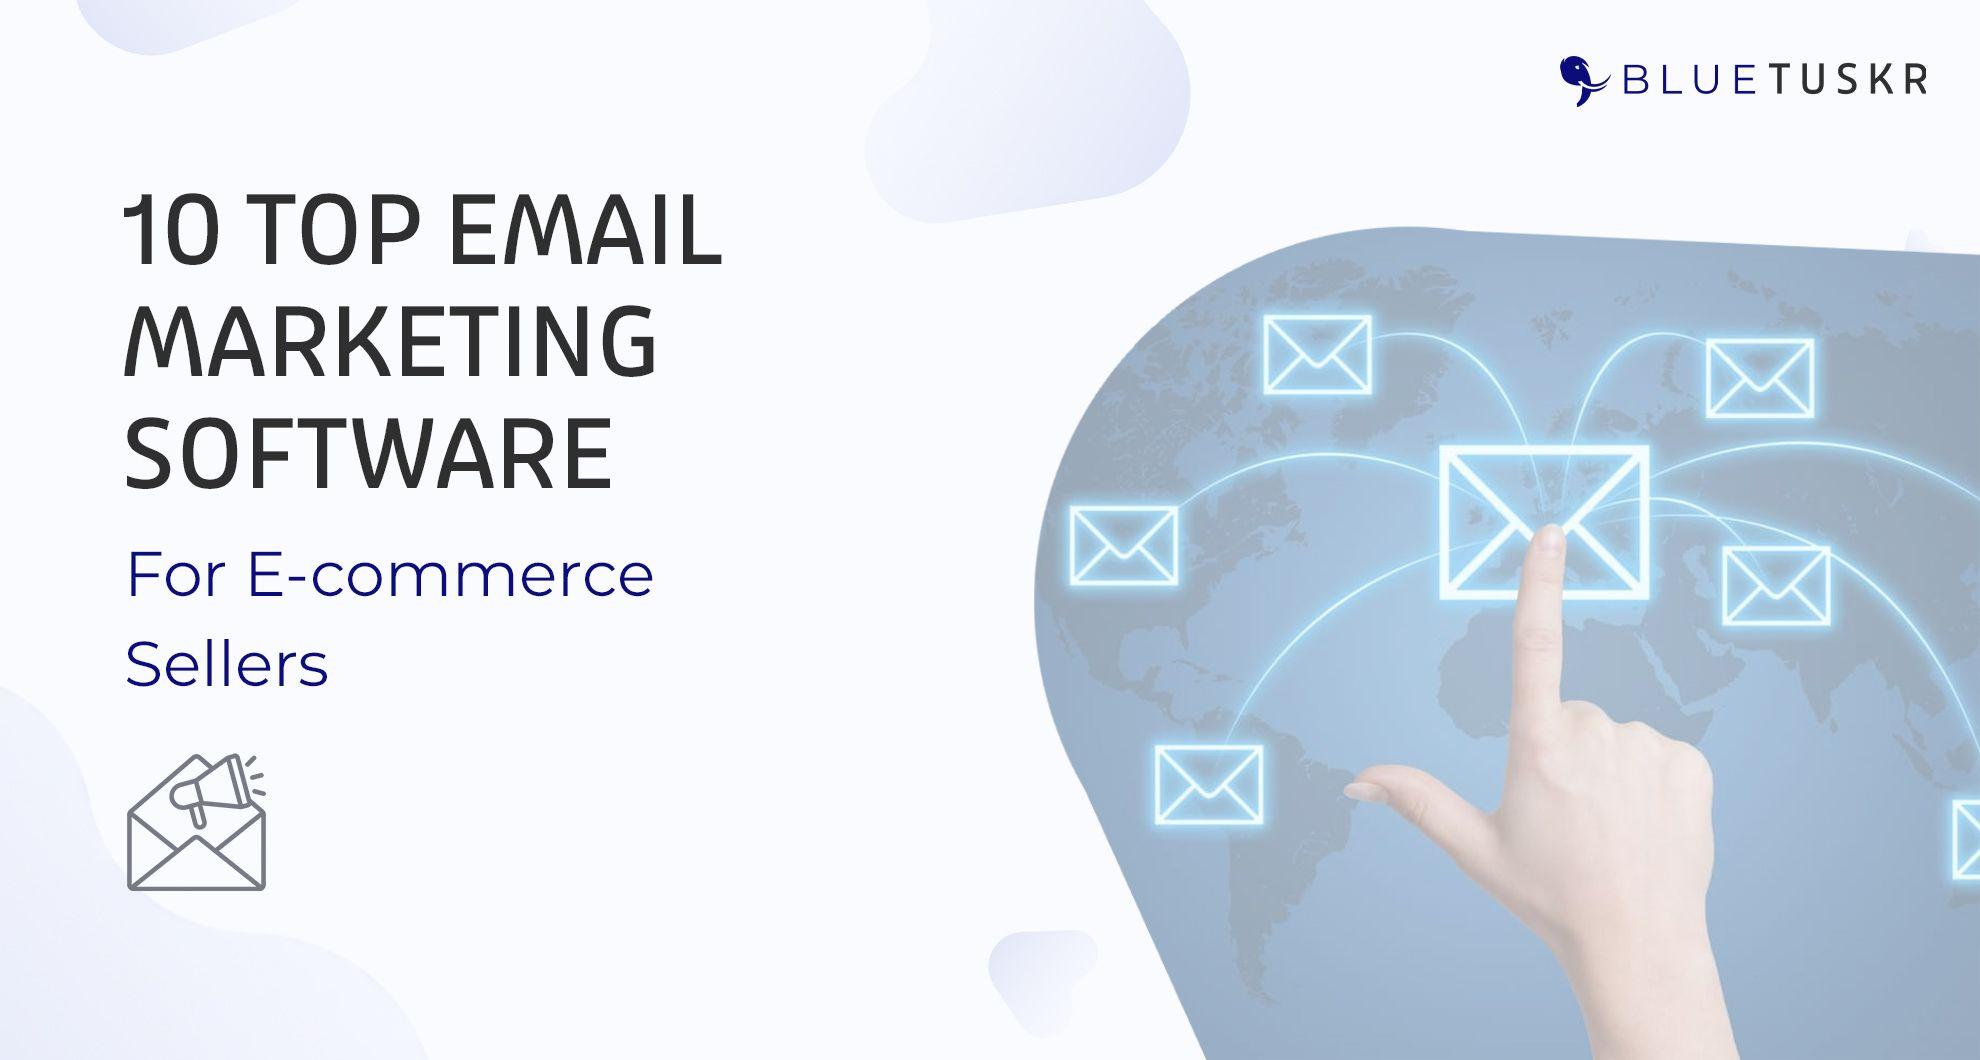 10 Top Email Marketing Software for E-commerce Sellers (Updated 2020)